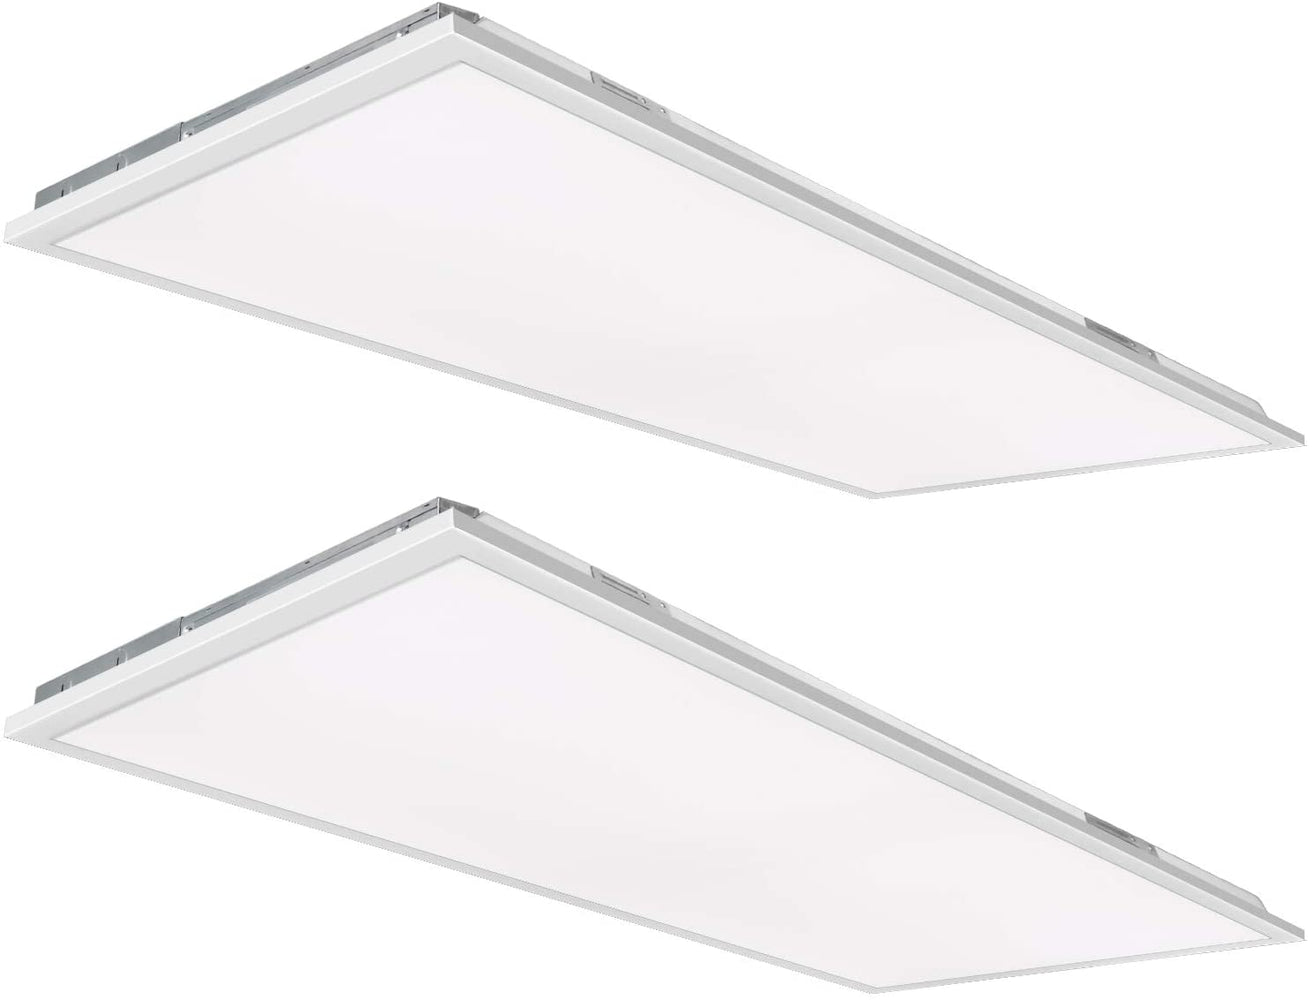 2x4 50W Flat LED Troffer Panel Light, 5500 lm 4000K Recessed Mount 0-10V Dimmable - 2 Pack